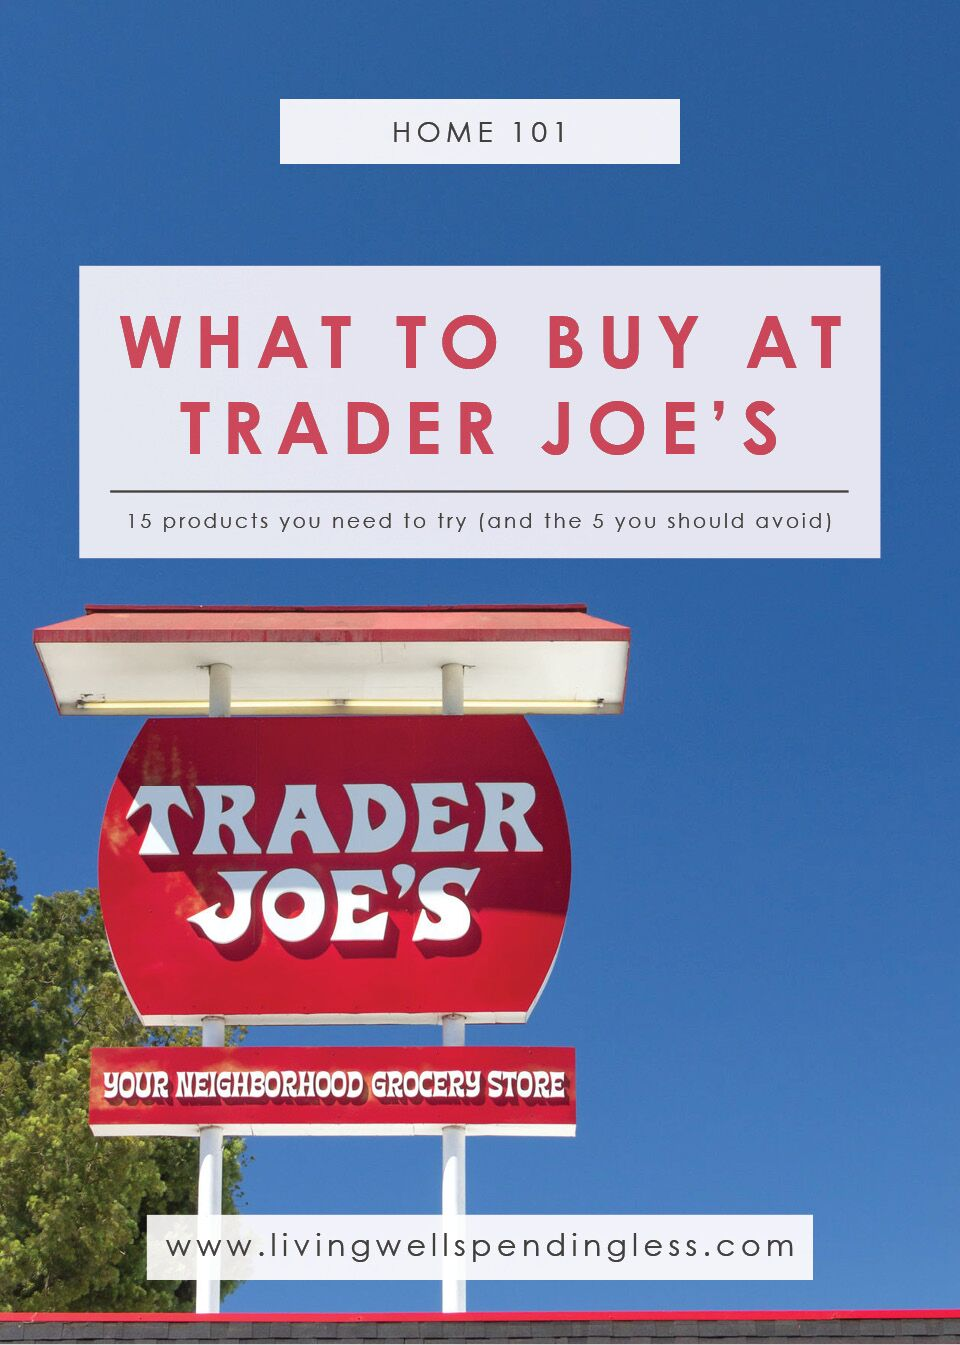 What to Buy at Trader Joe's: 15 Products You Need to Try and the 5 You Should Avoid.